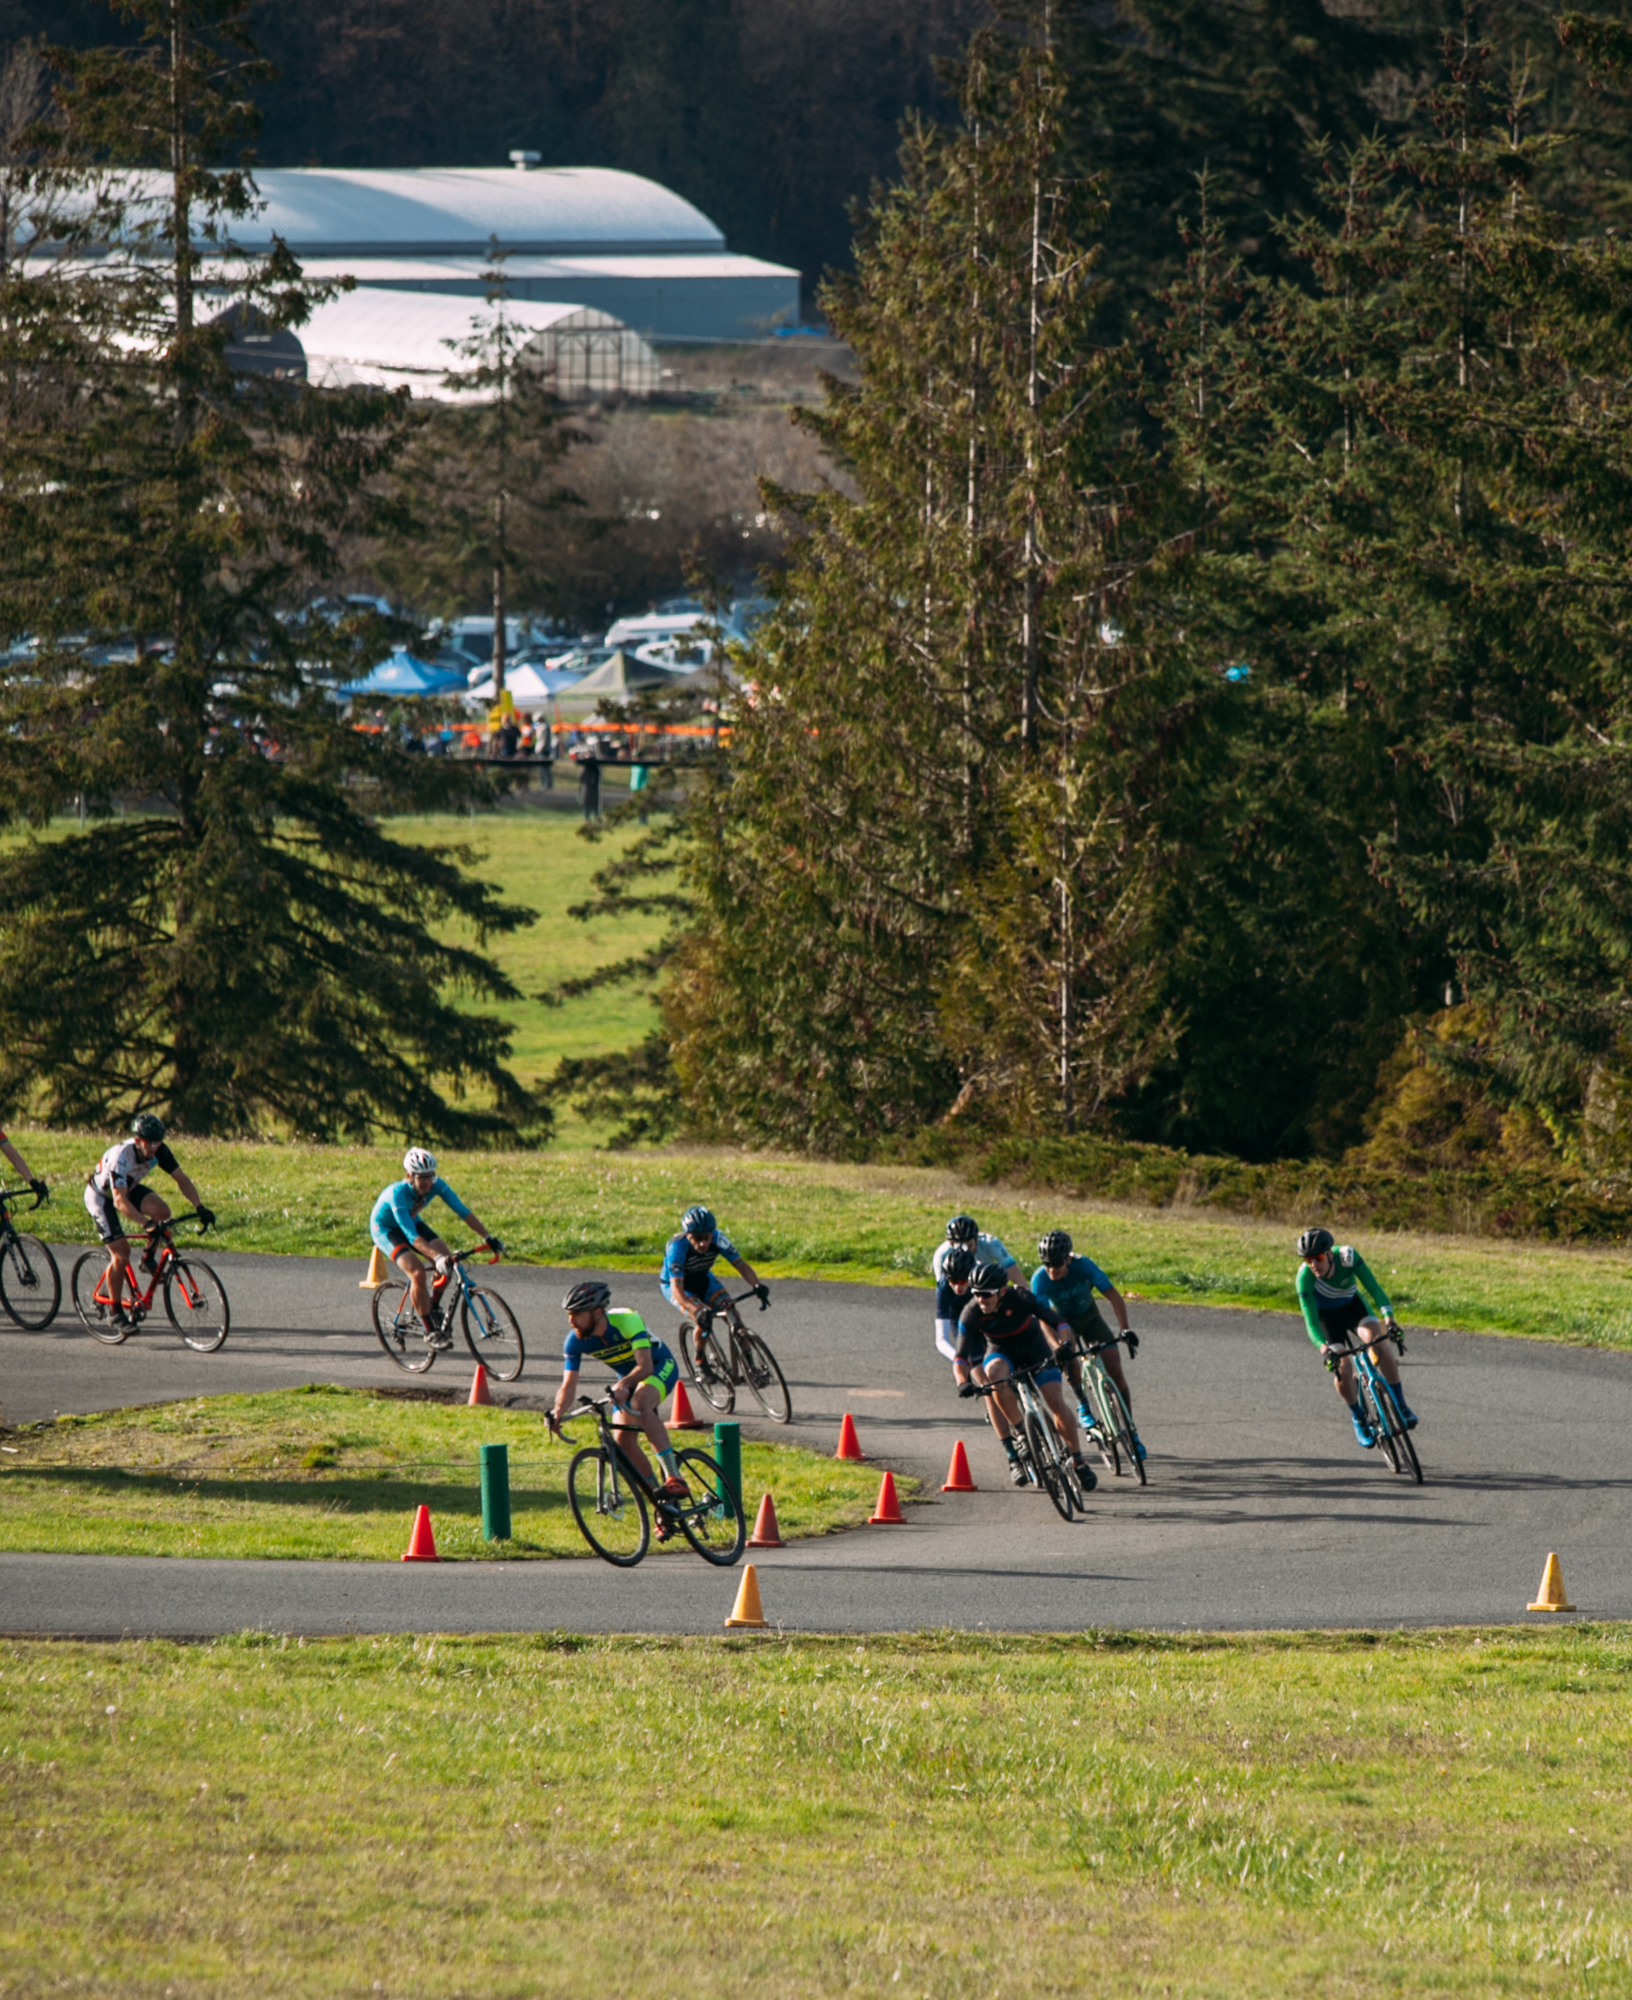 Cyclocross18_CCCX_RainierHS-15-mettlecycling.jpg